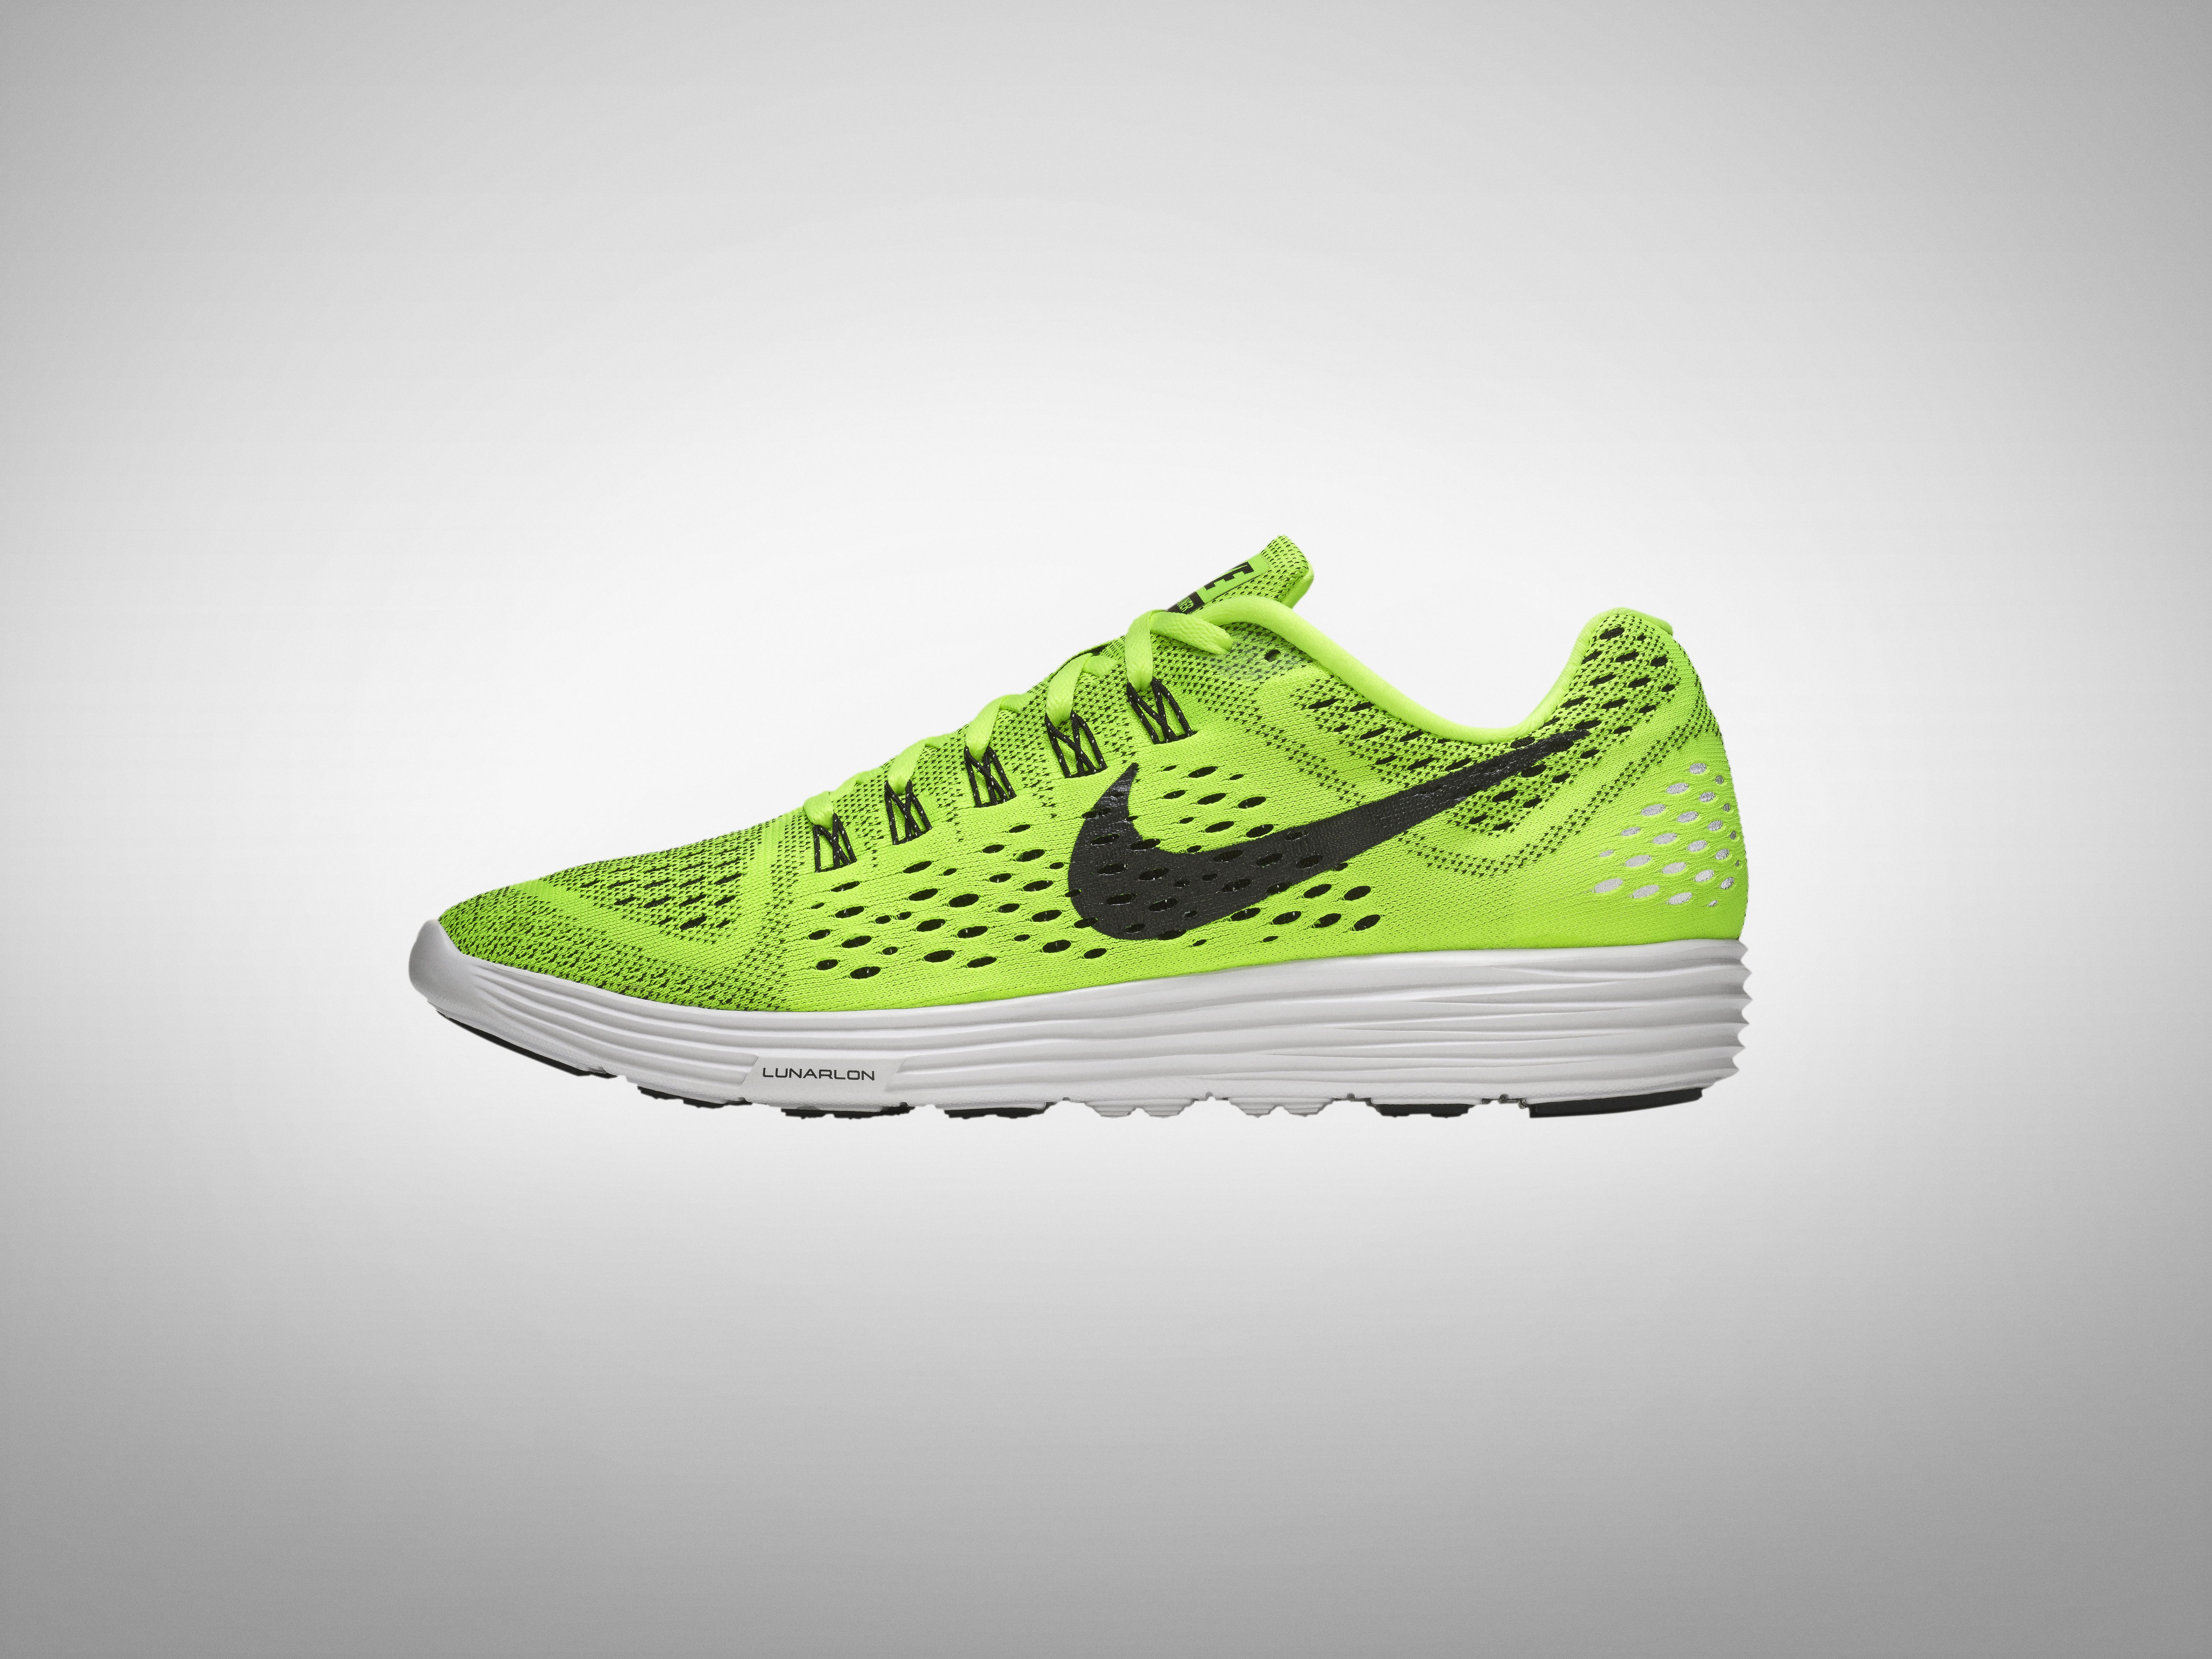 size 40 53905 09cfd promo code for men nike lunar tempo yellow green 3bbe6 01714